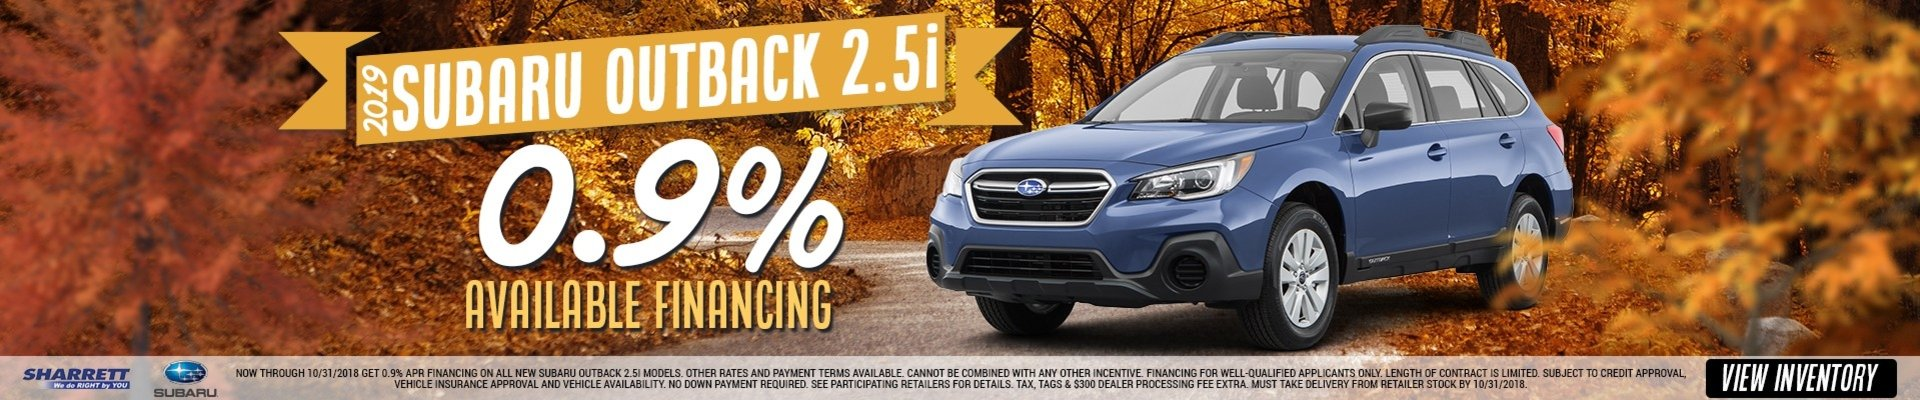 0.9% Available Financing on a 2019 Subaru Outback 2.5i